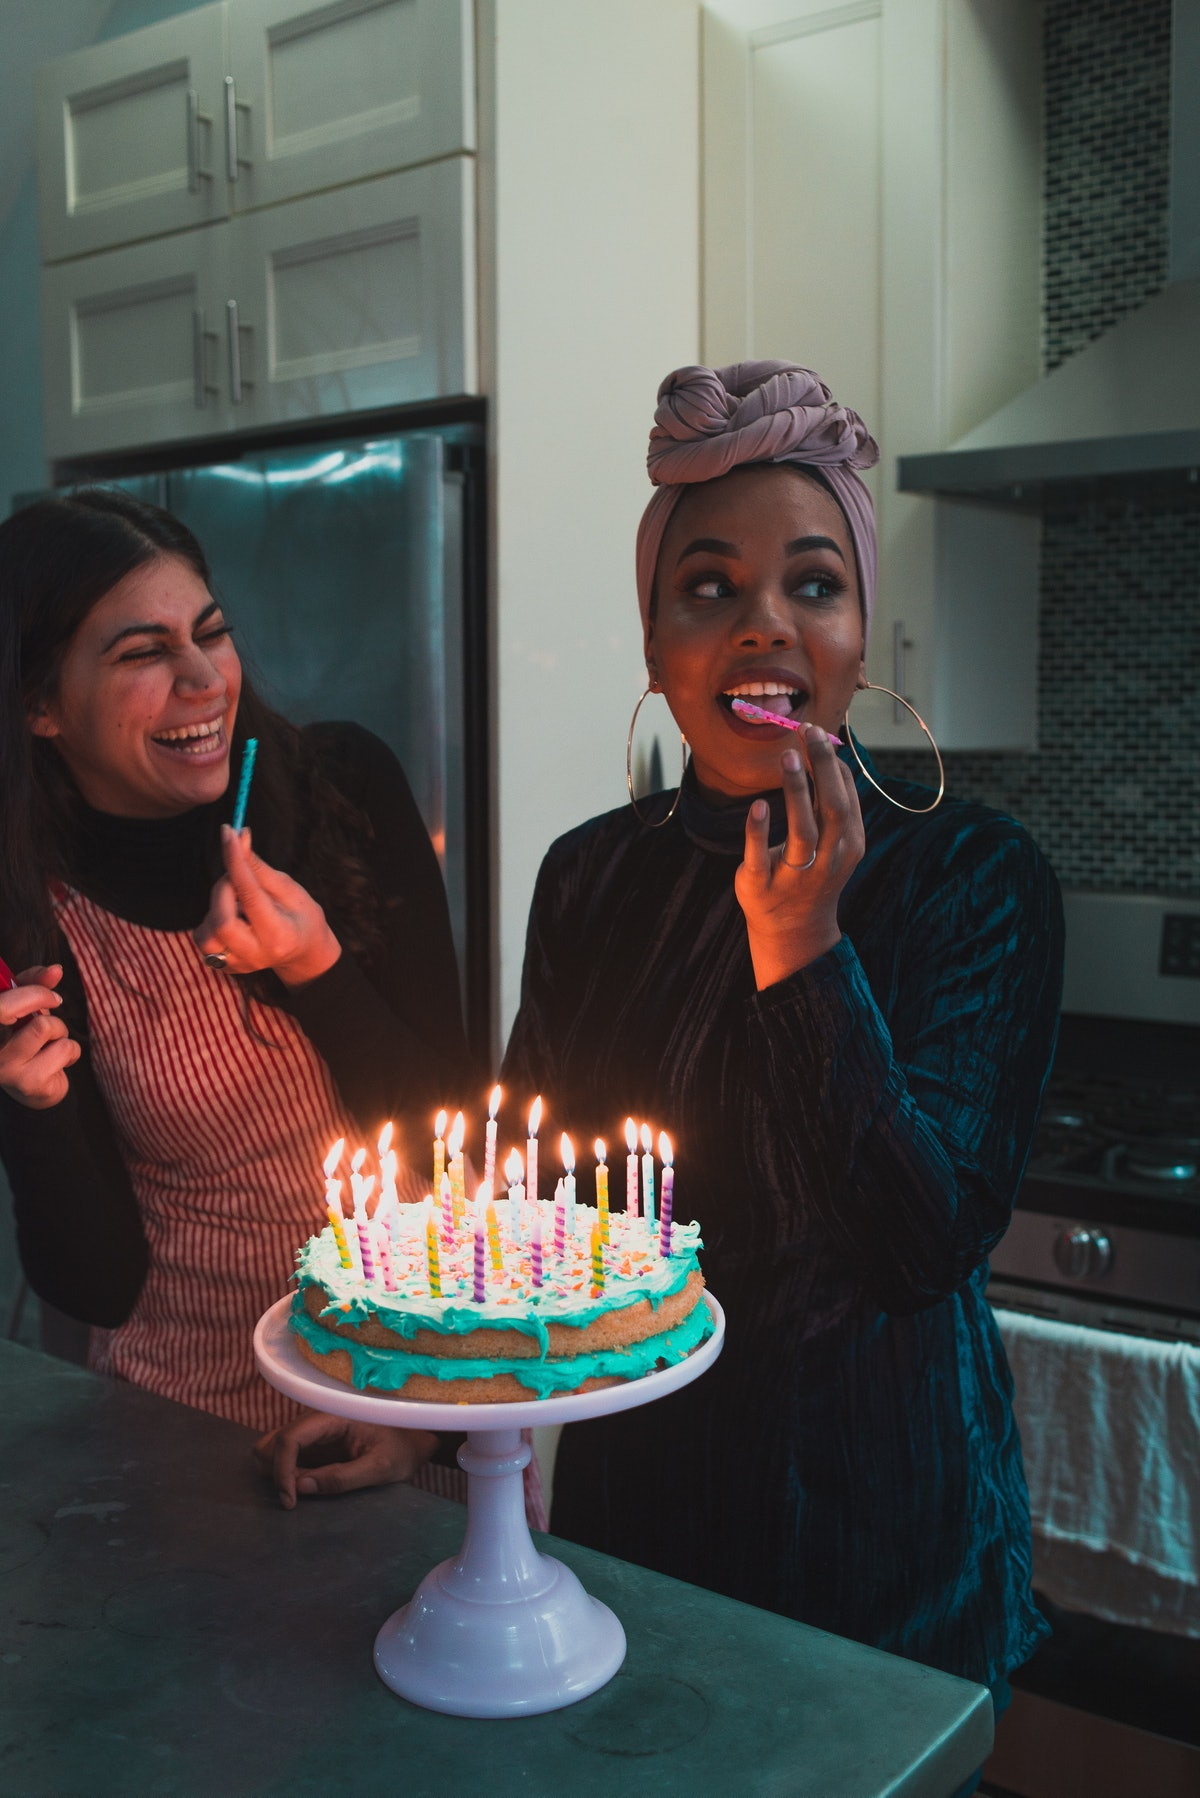 Young woman licking the candle on her birthday cake before posting a happy birthday caption on Instagram.